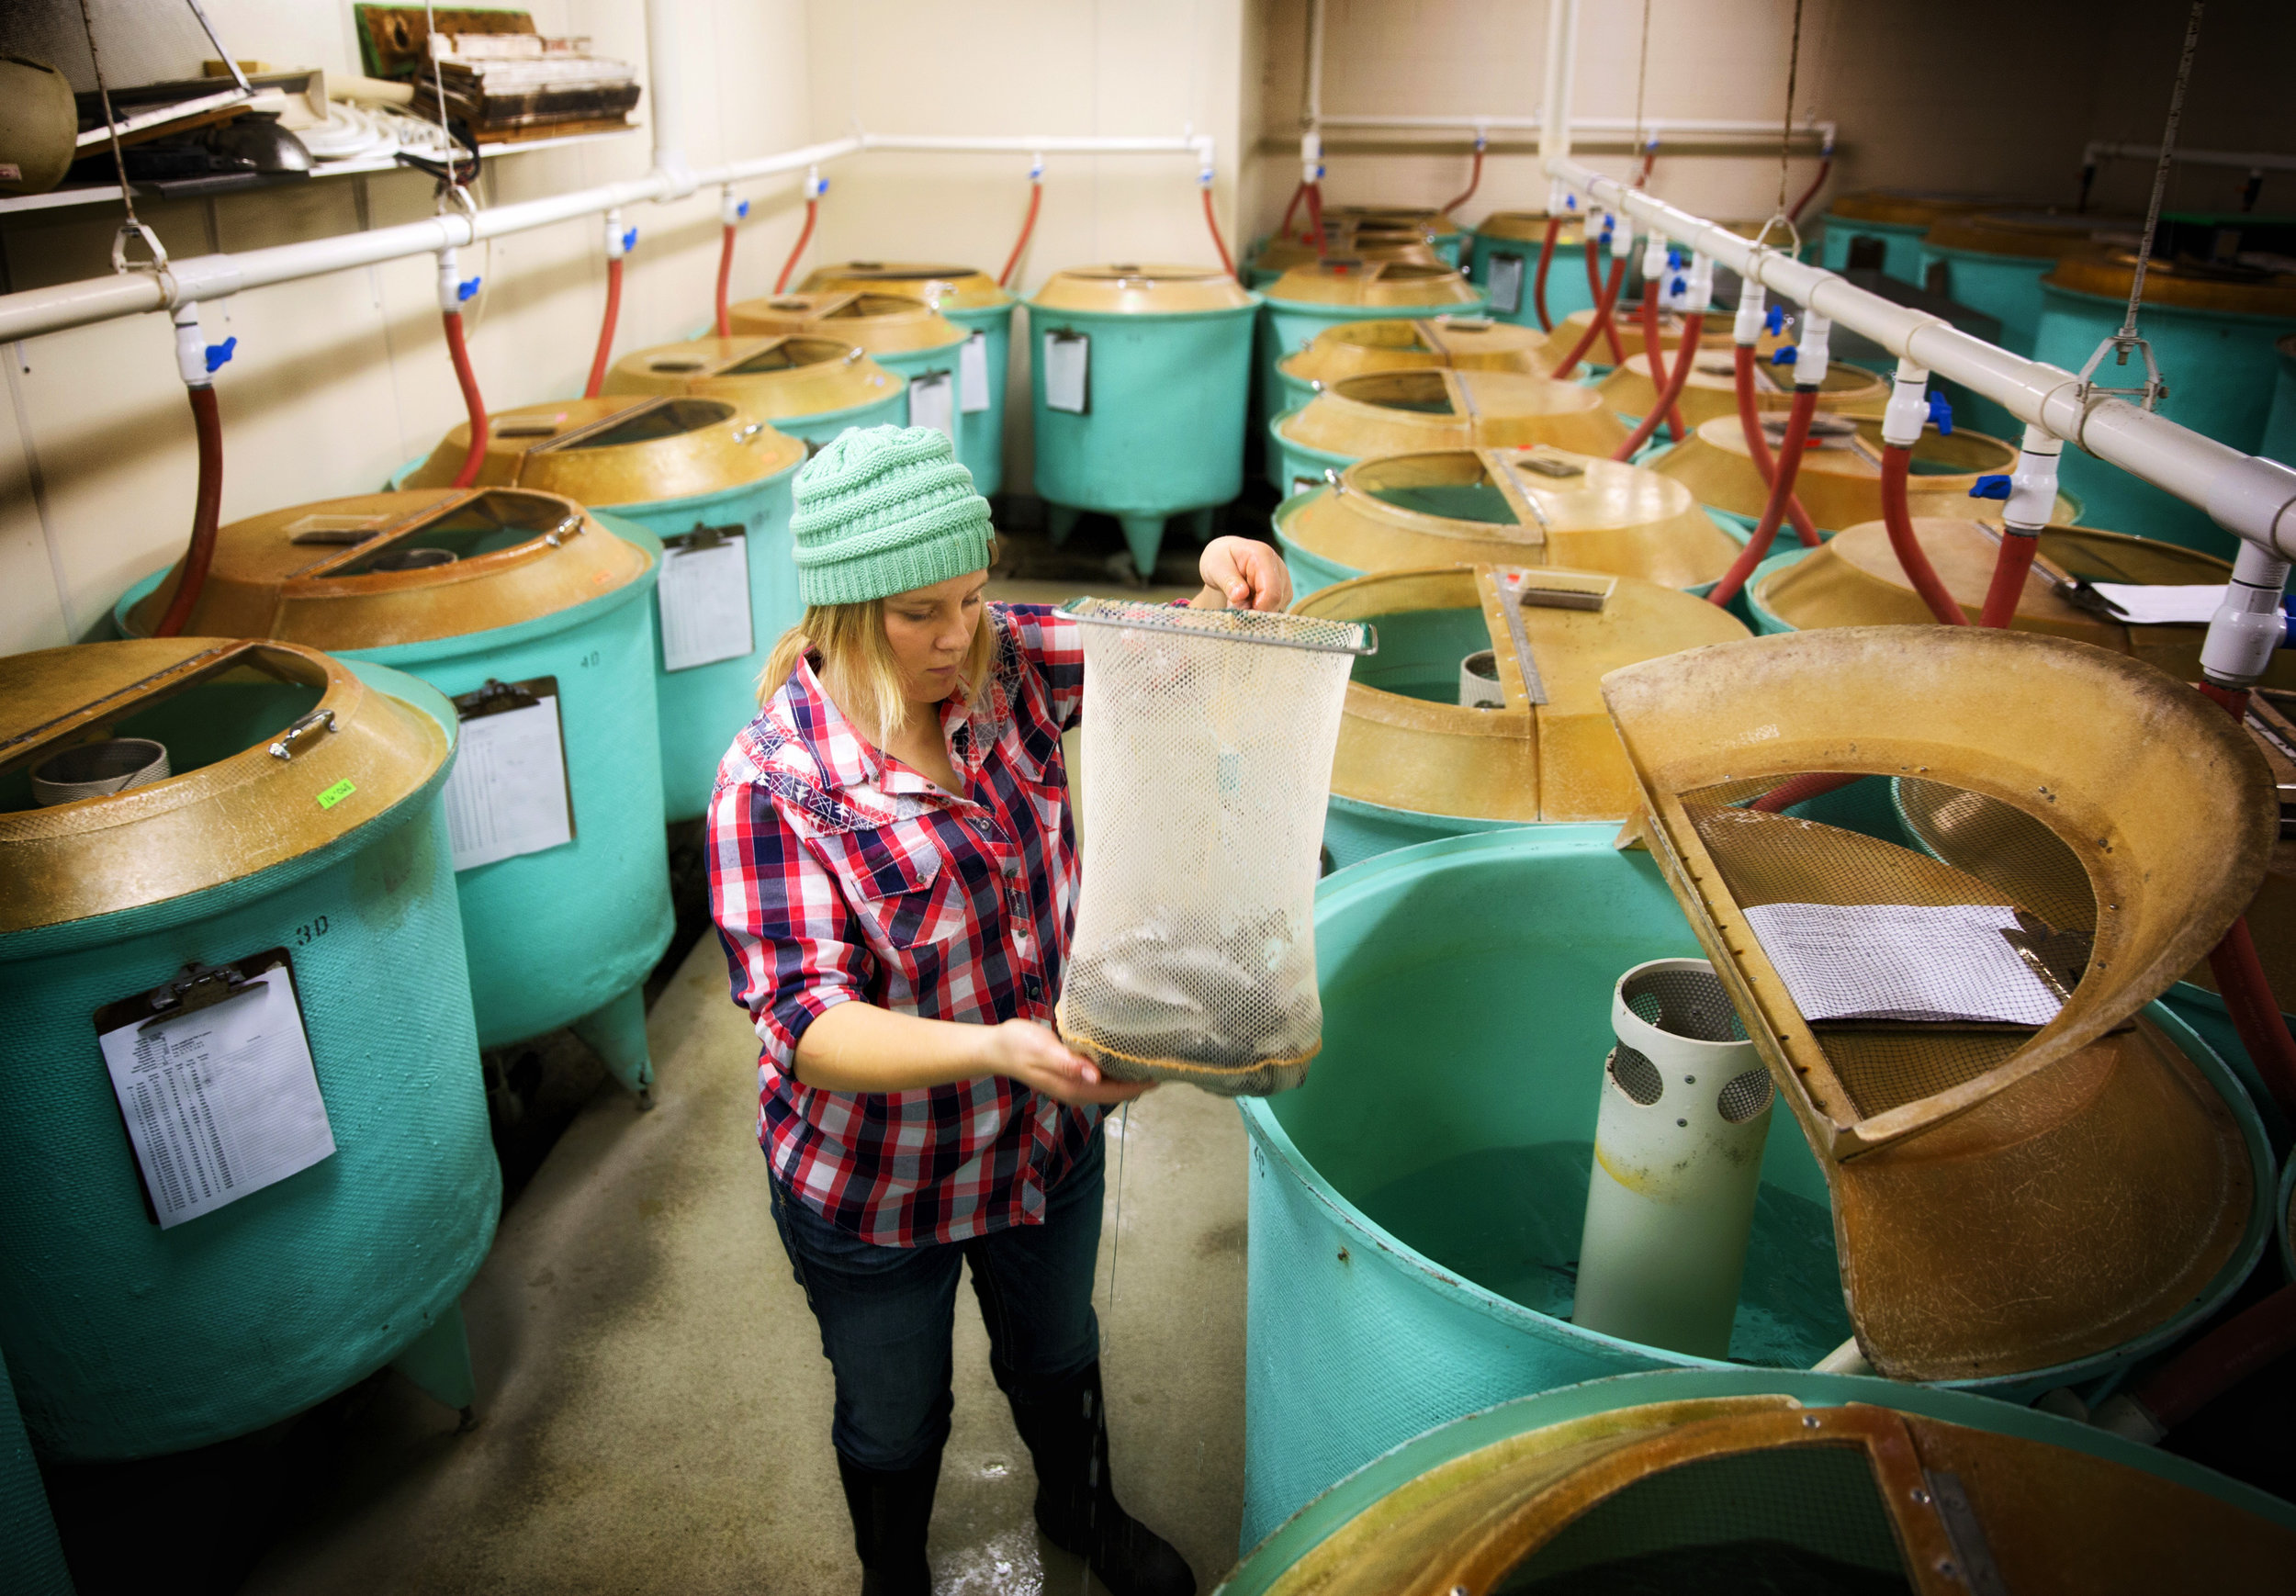 Early Life Stage Technician Talor Stauffer collects fish to put pit tags in Wednesday, Jan. 25, 2017, at Clear Springs Foods in Buhl Idaho. Pit tags are tiny identification chips that contain the family history for each fish. By tagging the fish, researchers can study how genetic traits are passed along.